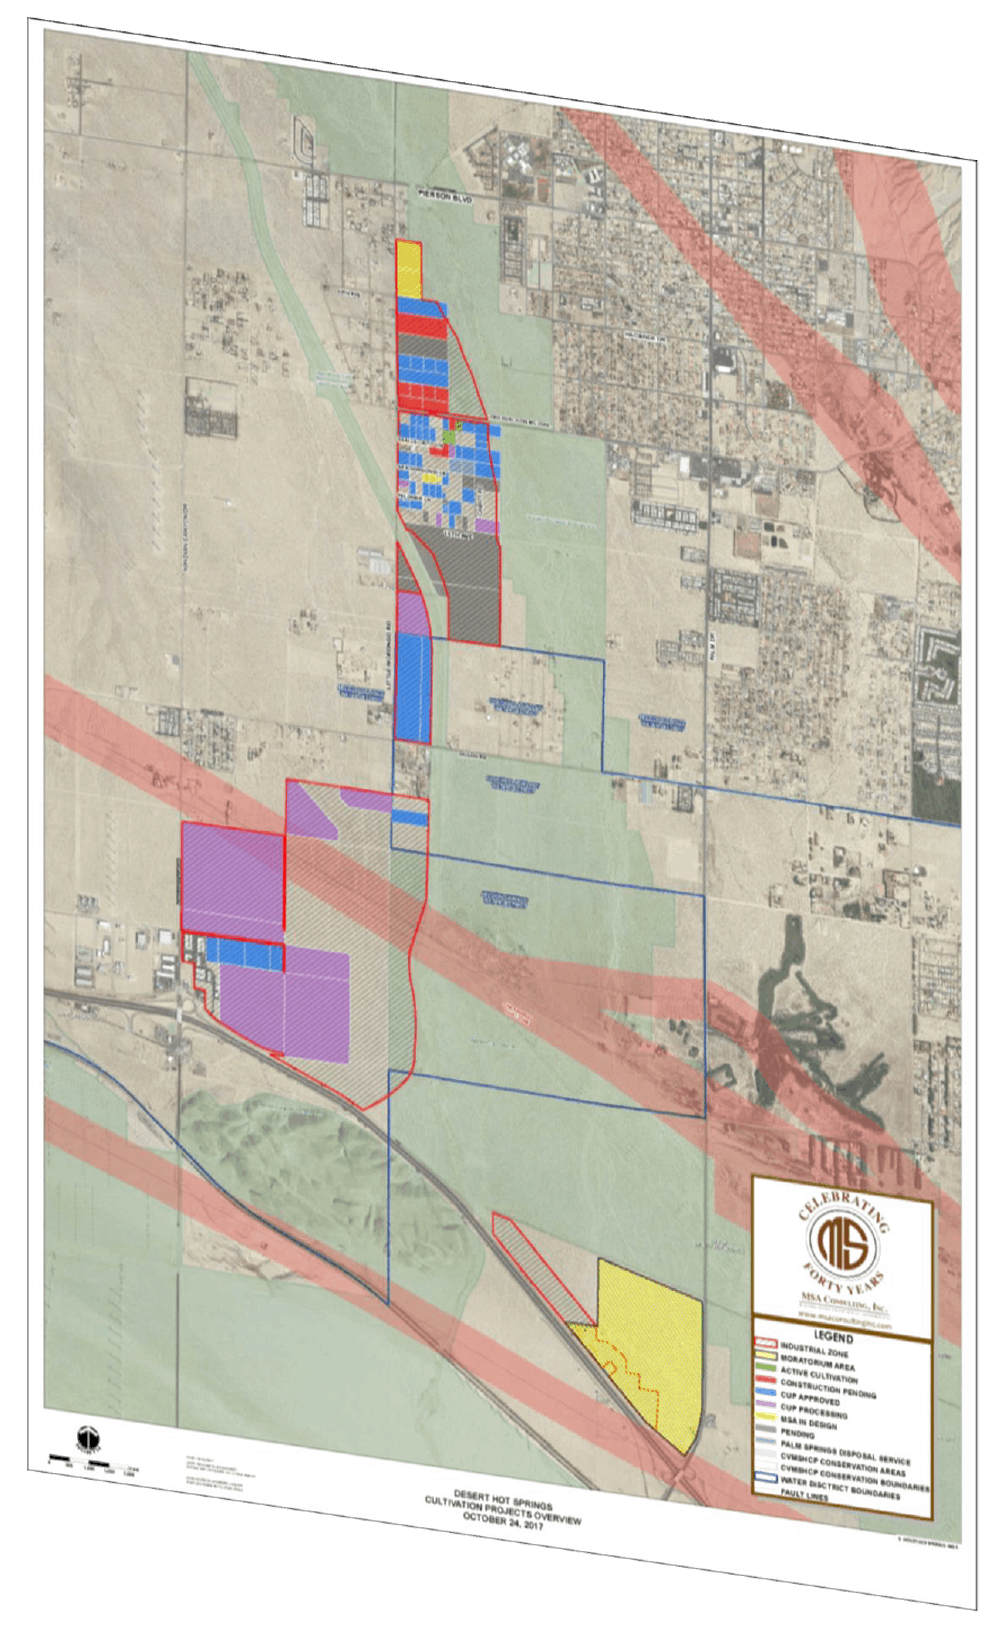 Cannabis - MSA Consulting, Inc. on map of north palm beach county, map of spring valley, map of tarpon springs fl, map of thermal, map of royal palm beach, map of w palm beach, map of sun city palm desert, map of the inland empire, map of laytonville, map of las vegas, map of highland, map of the greenbrier, map of silver spring, map of steamboat springs colorado, map of thousand palms, map of eureka springs arkansas, map of west palm, map of seattle area, map of cancún, map of topanga,